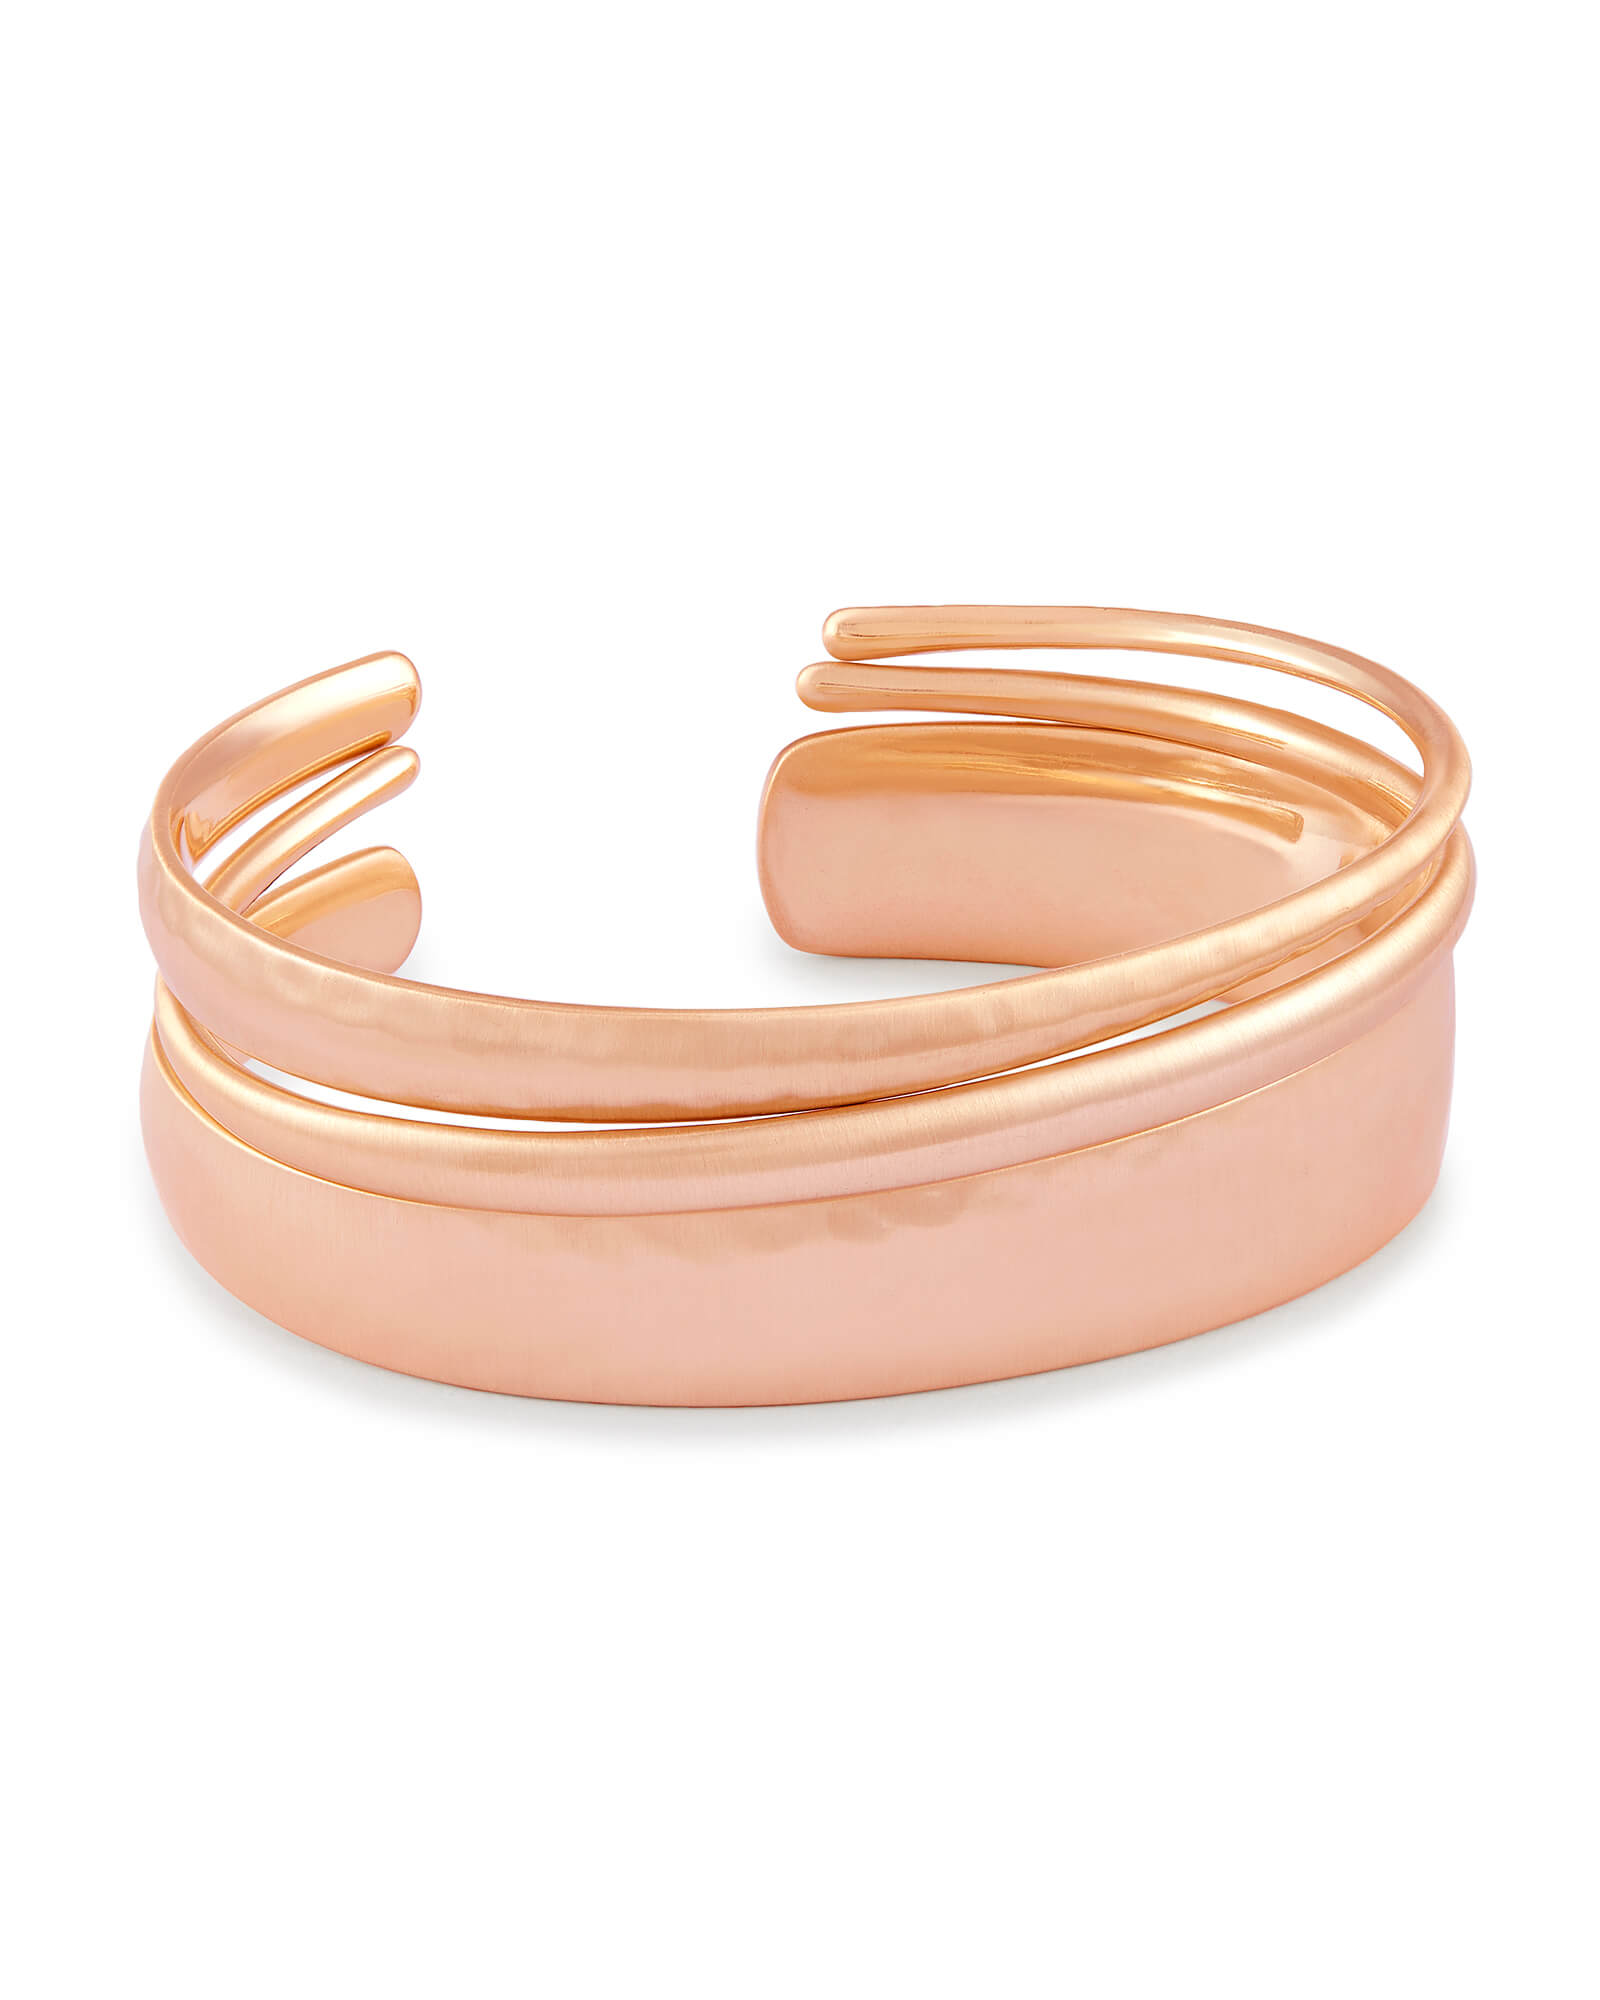 Tiana Pinch Bracelet Set in Rose Gold